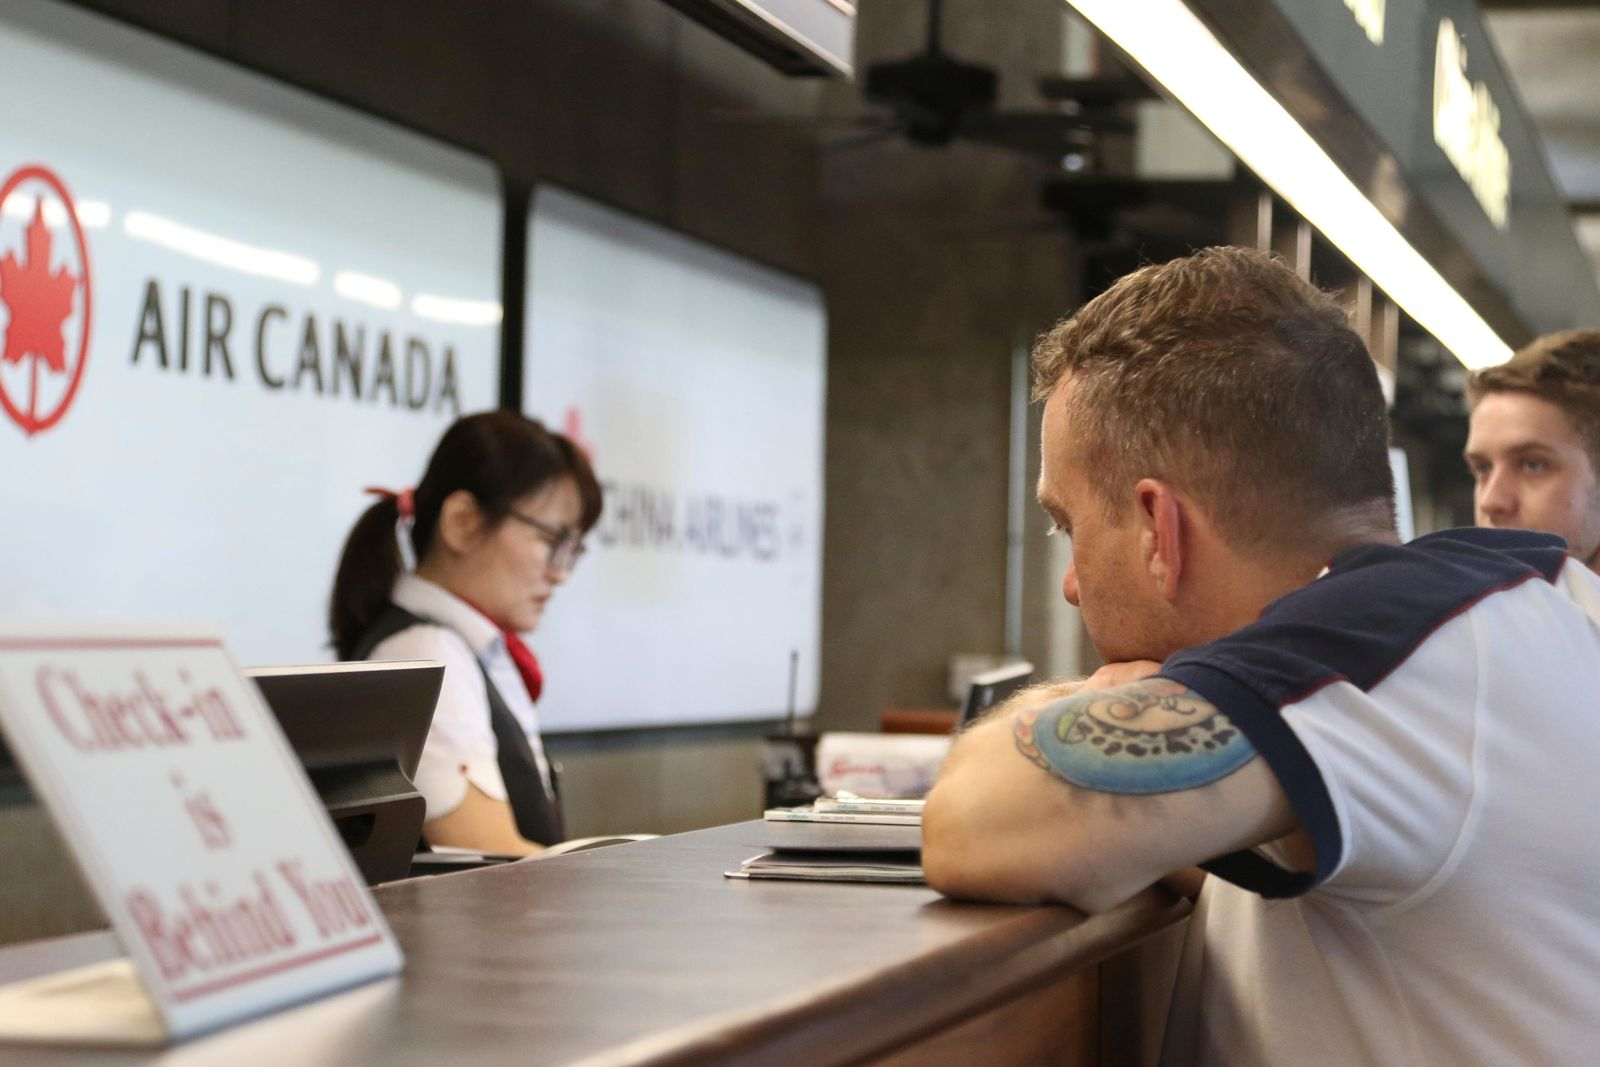 Andrew Szucs, right, who was on the Air Canada flight that made an emergency landing, waits for assistance at the Air Canada desk, Thursday, July 11, 2019 at Honolulu's international airport. (AP Photo/Caleb Jones)